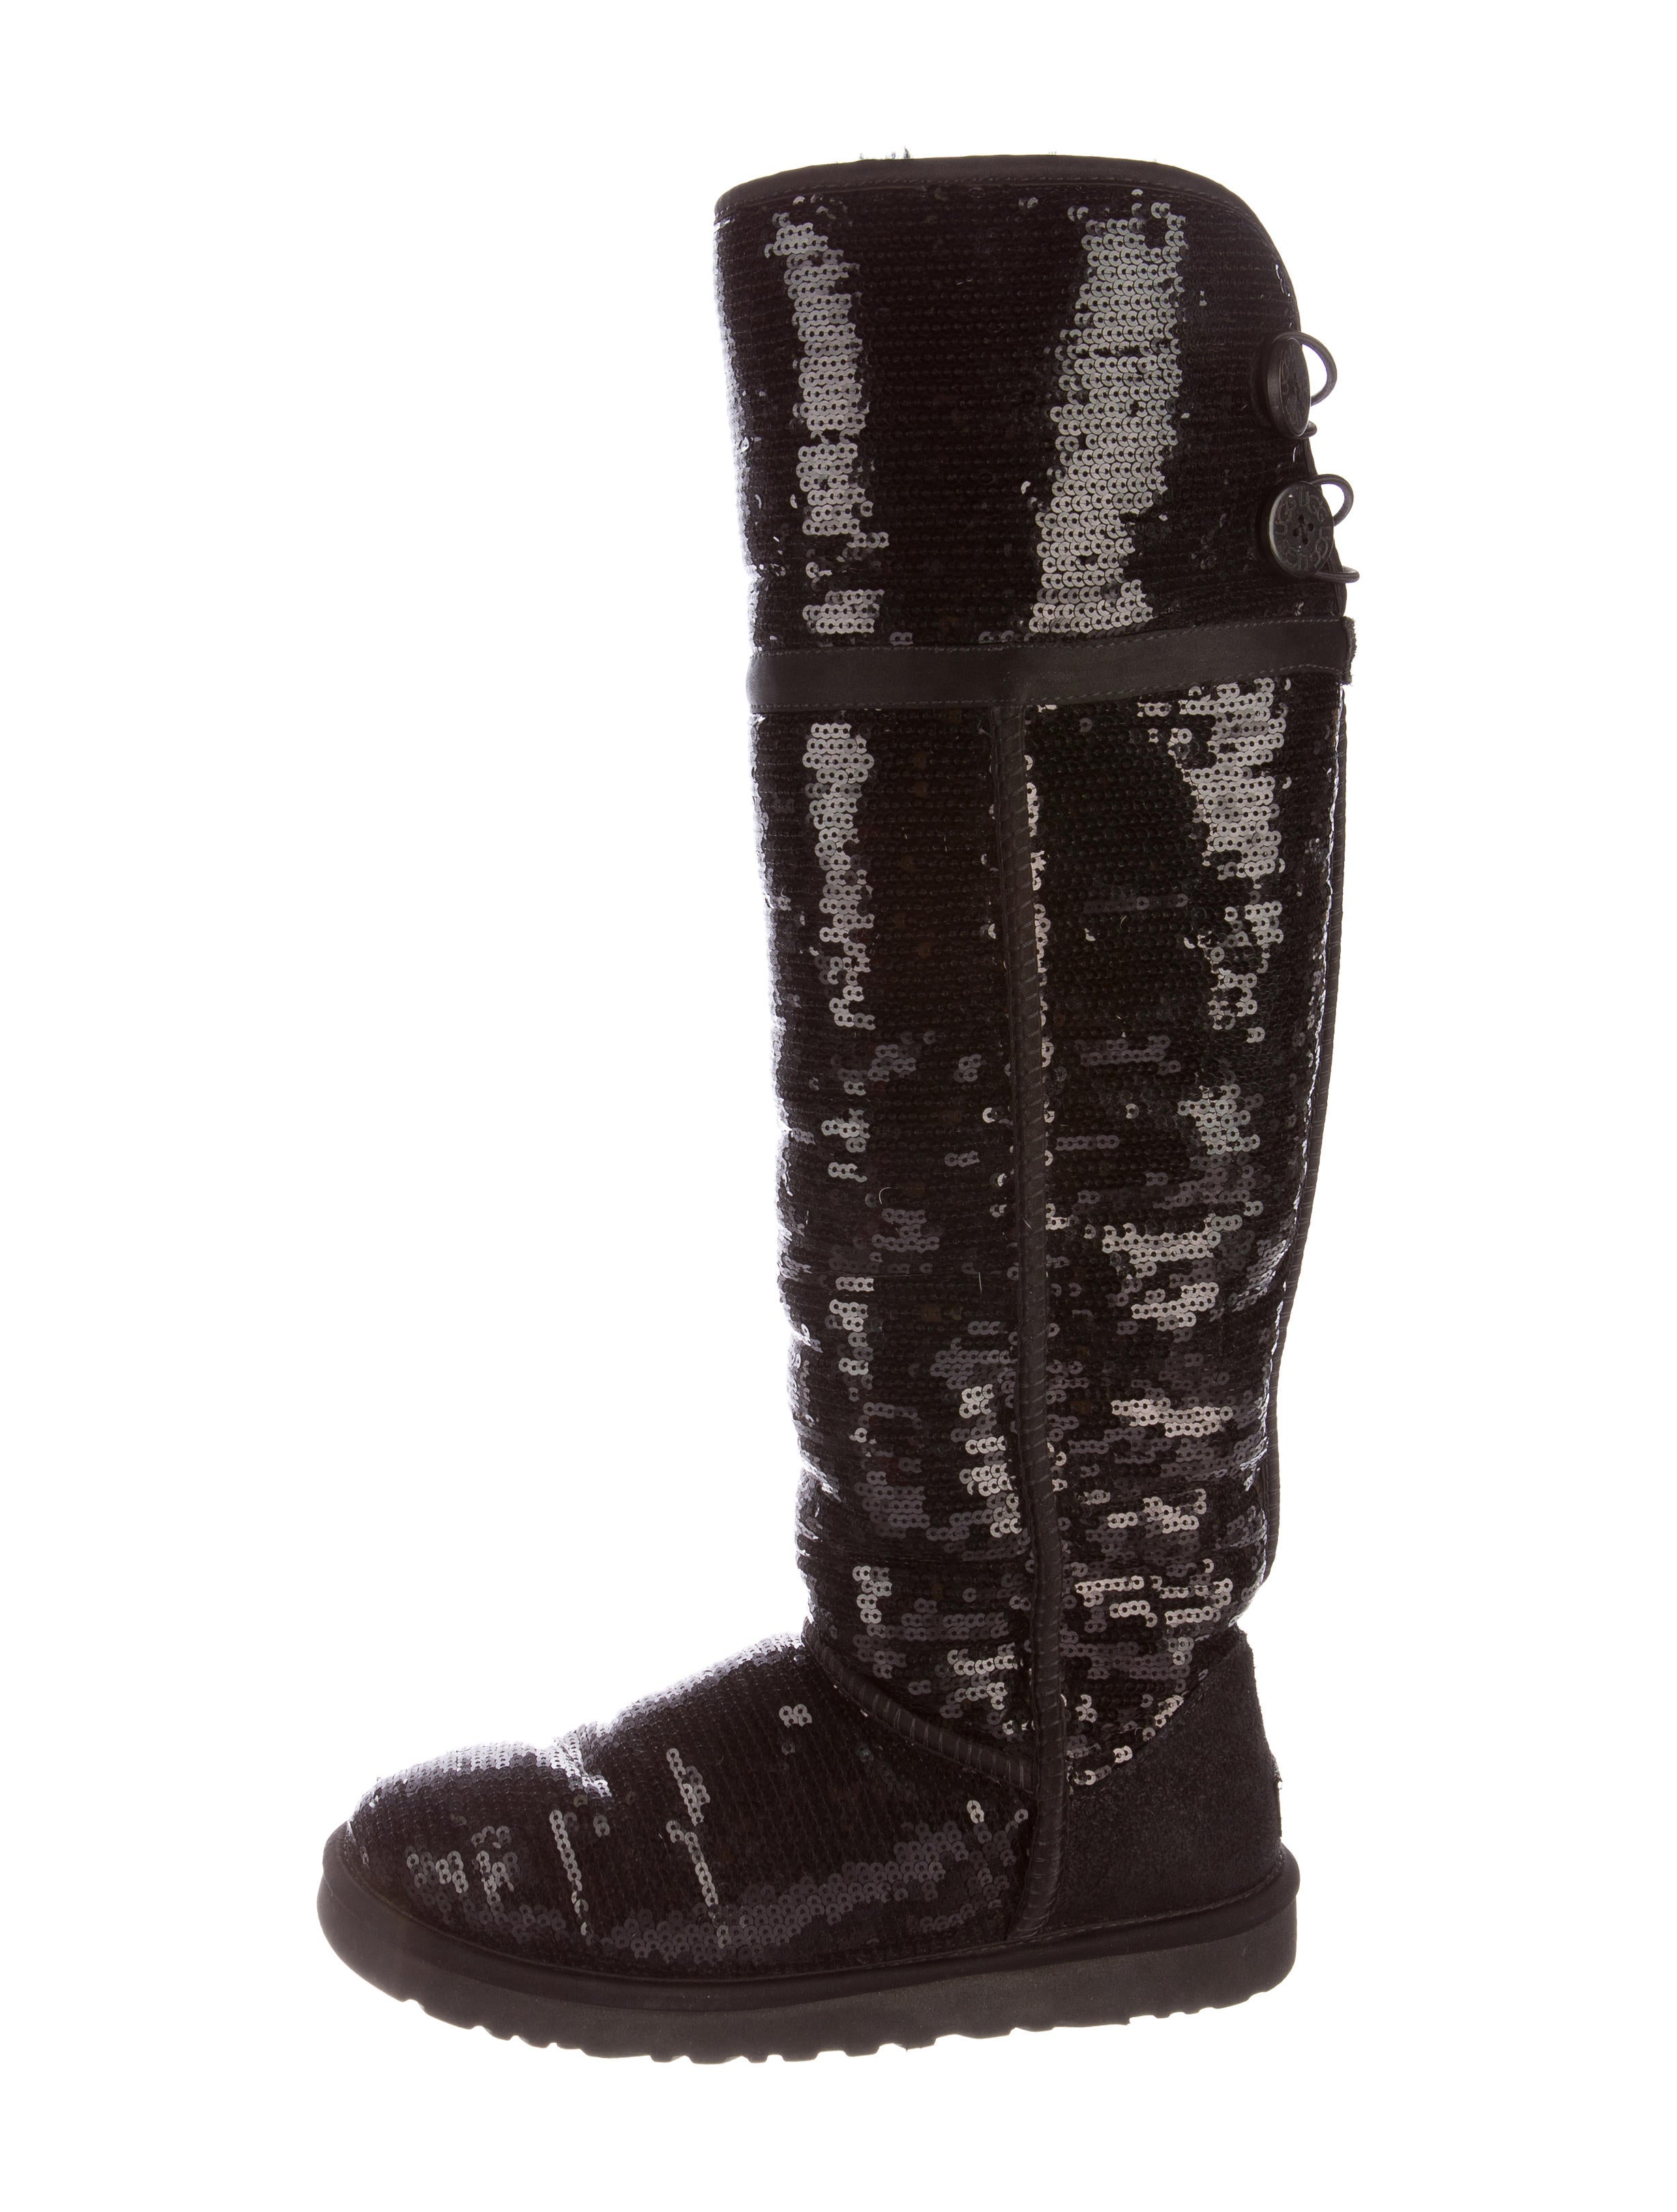 23f052b302a Over The Knee Sequin Ugg Boots